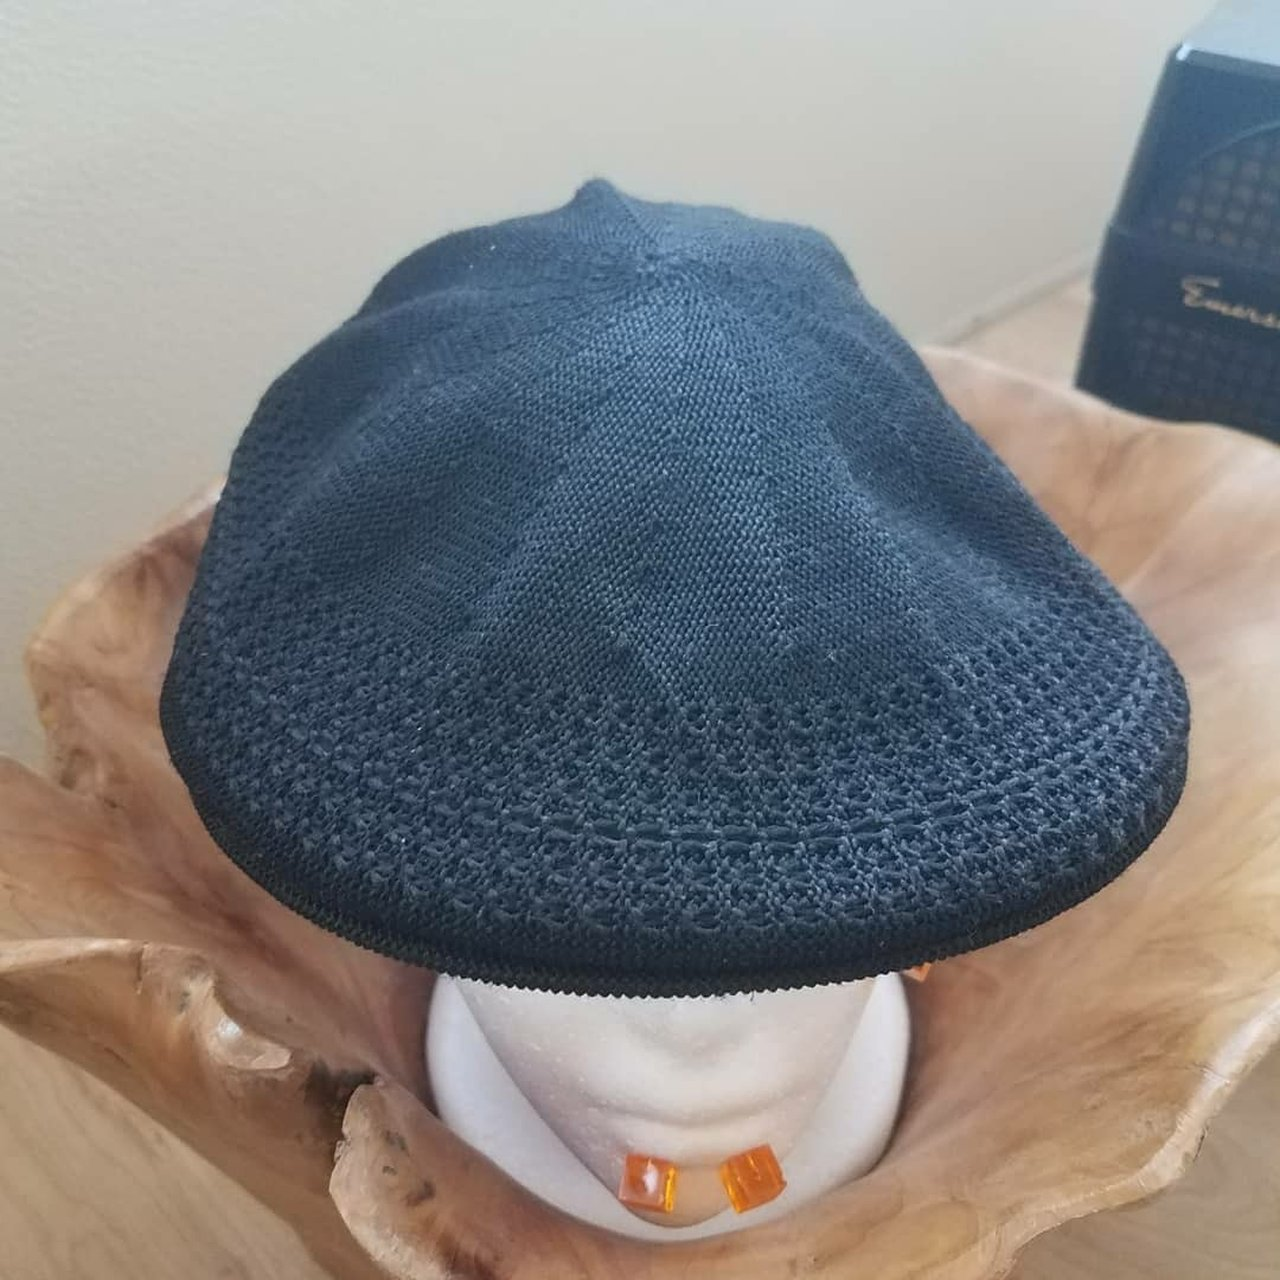 Stetson Black Flatcap Size Small Medium Great Condition - Depop 546c38b16fed